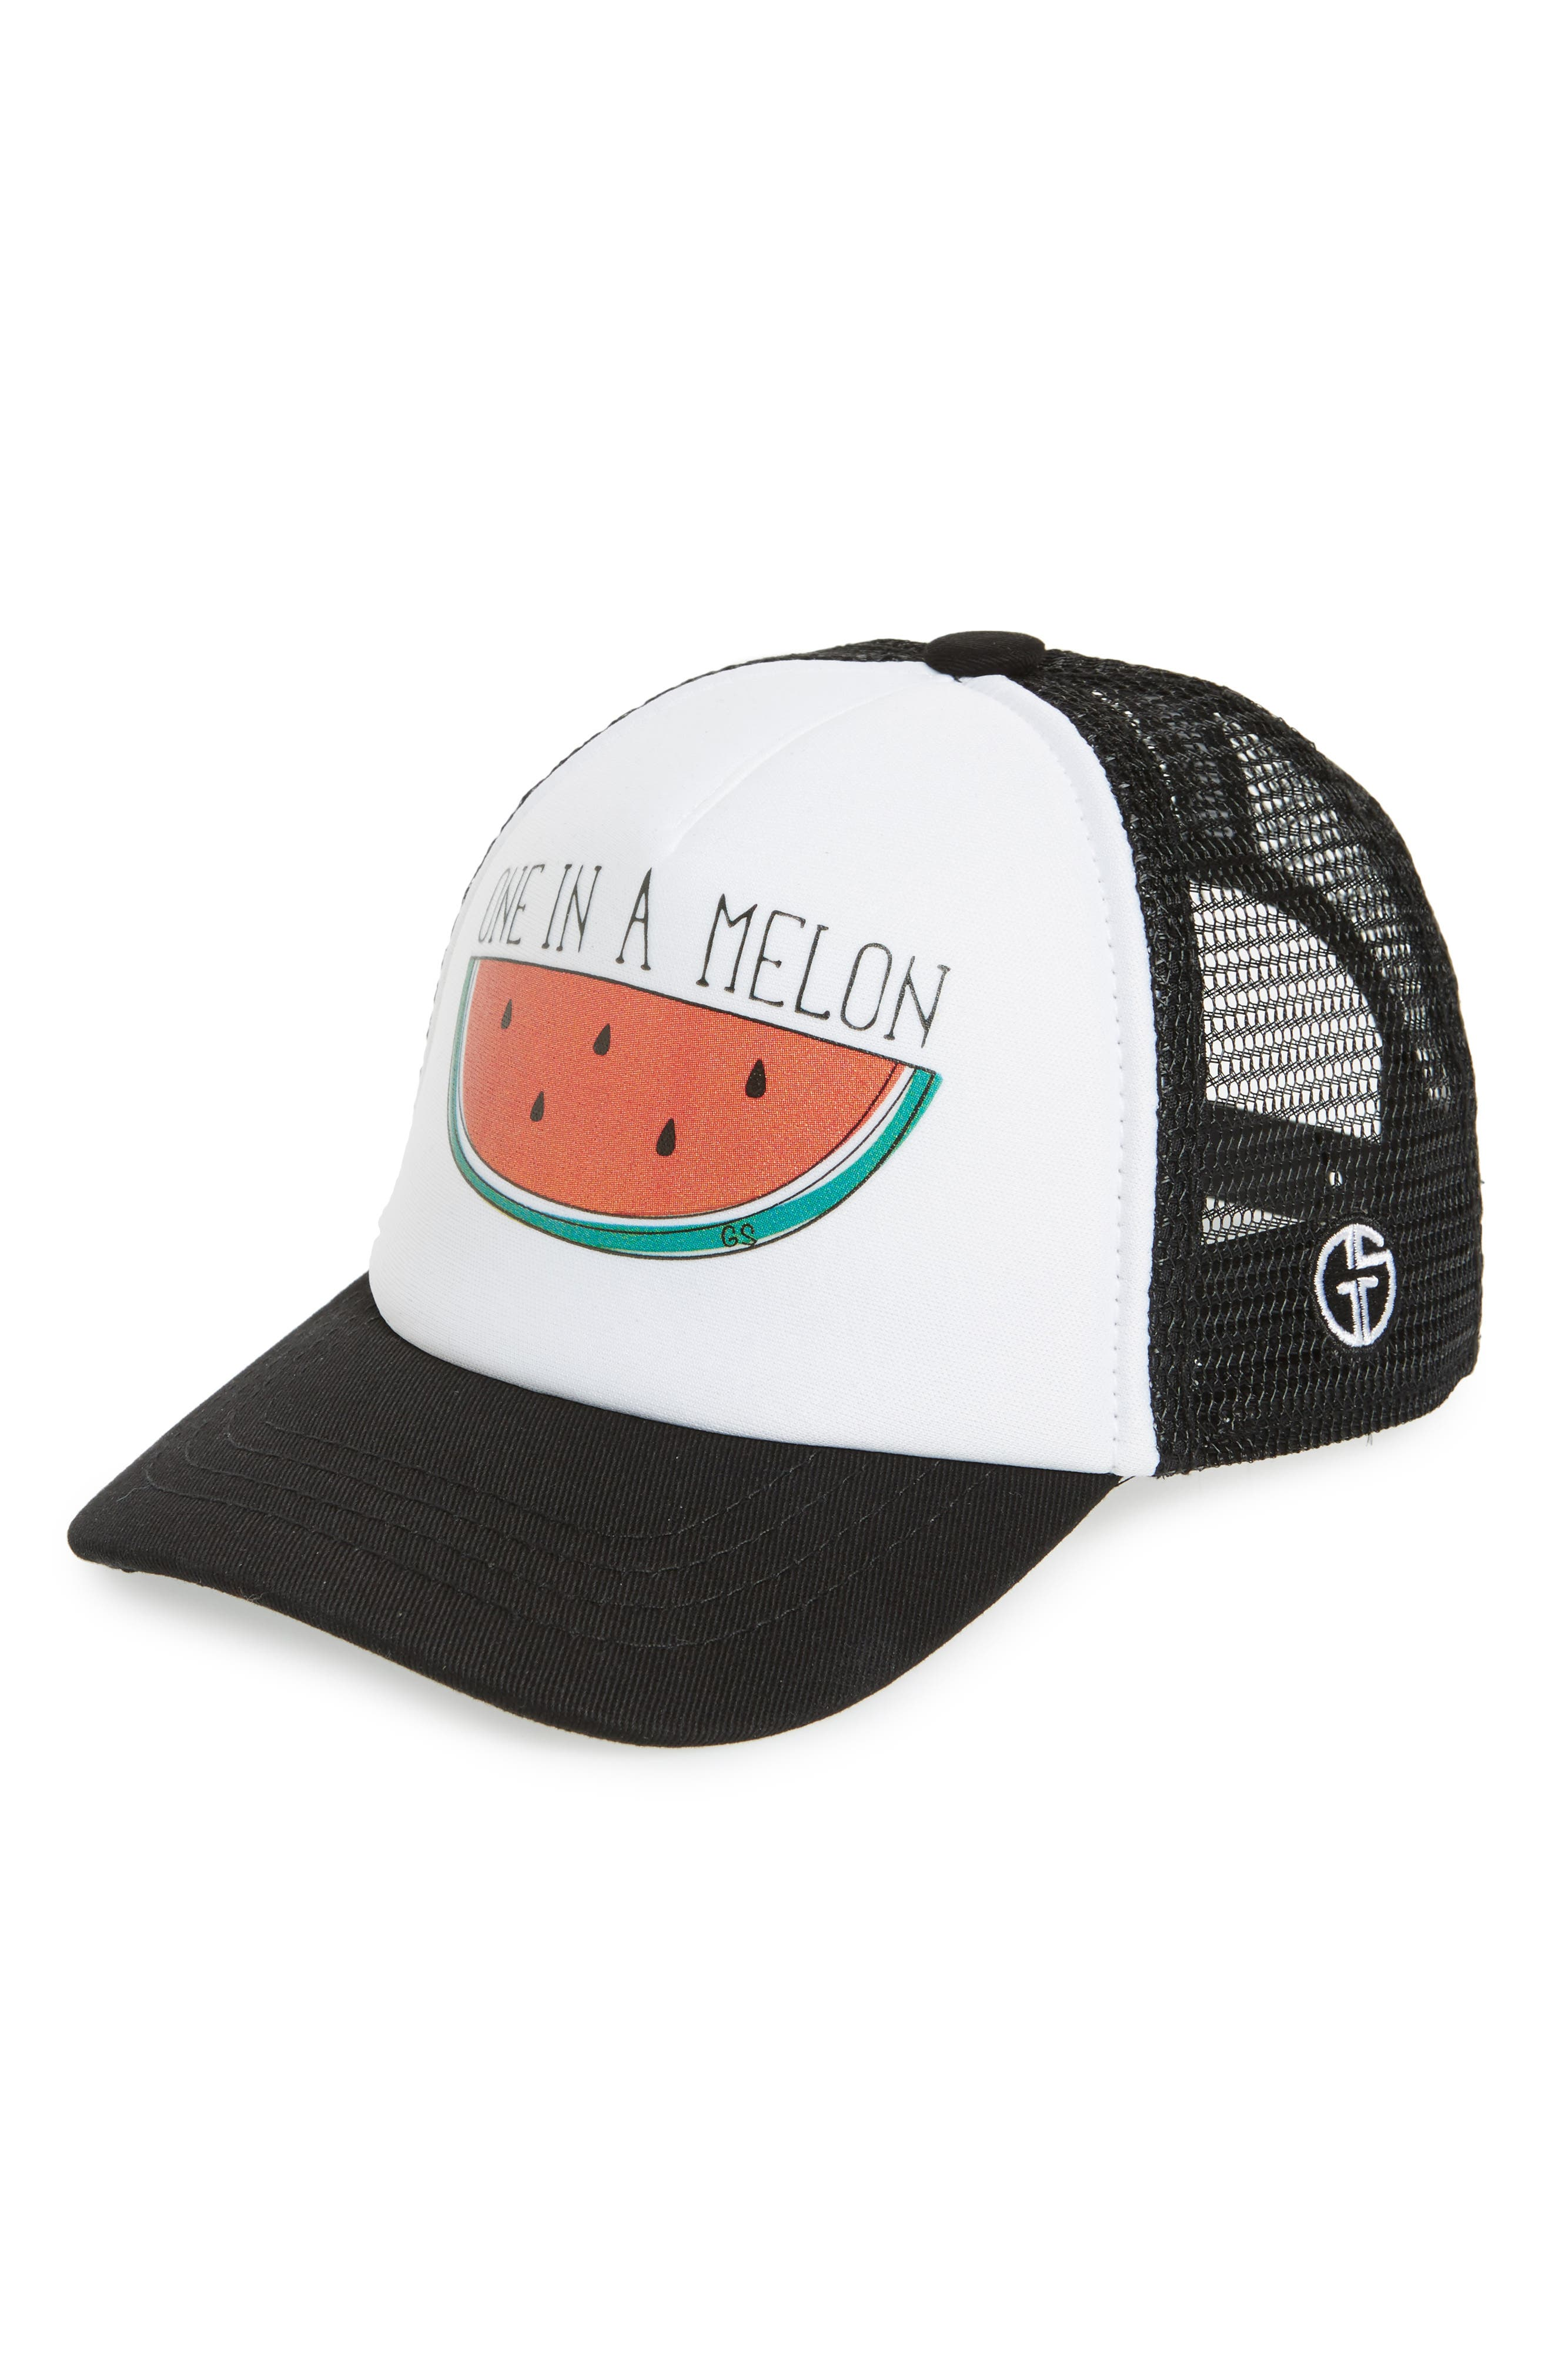 One in a Melon Trucker Hat,                             Main thumbnail 1, color,                             BLACK/ WHITE